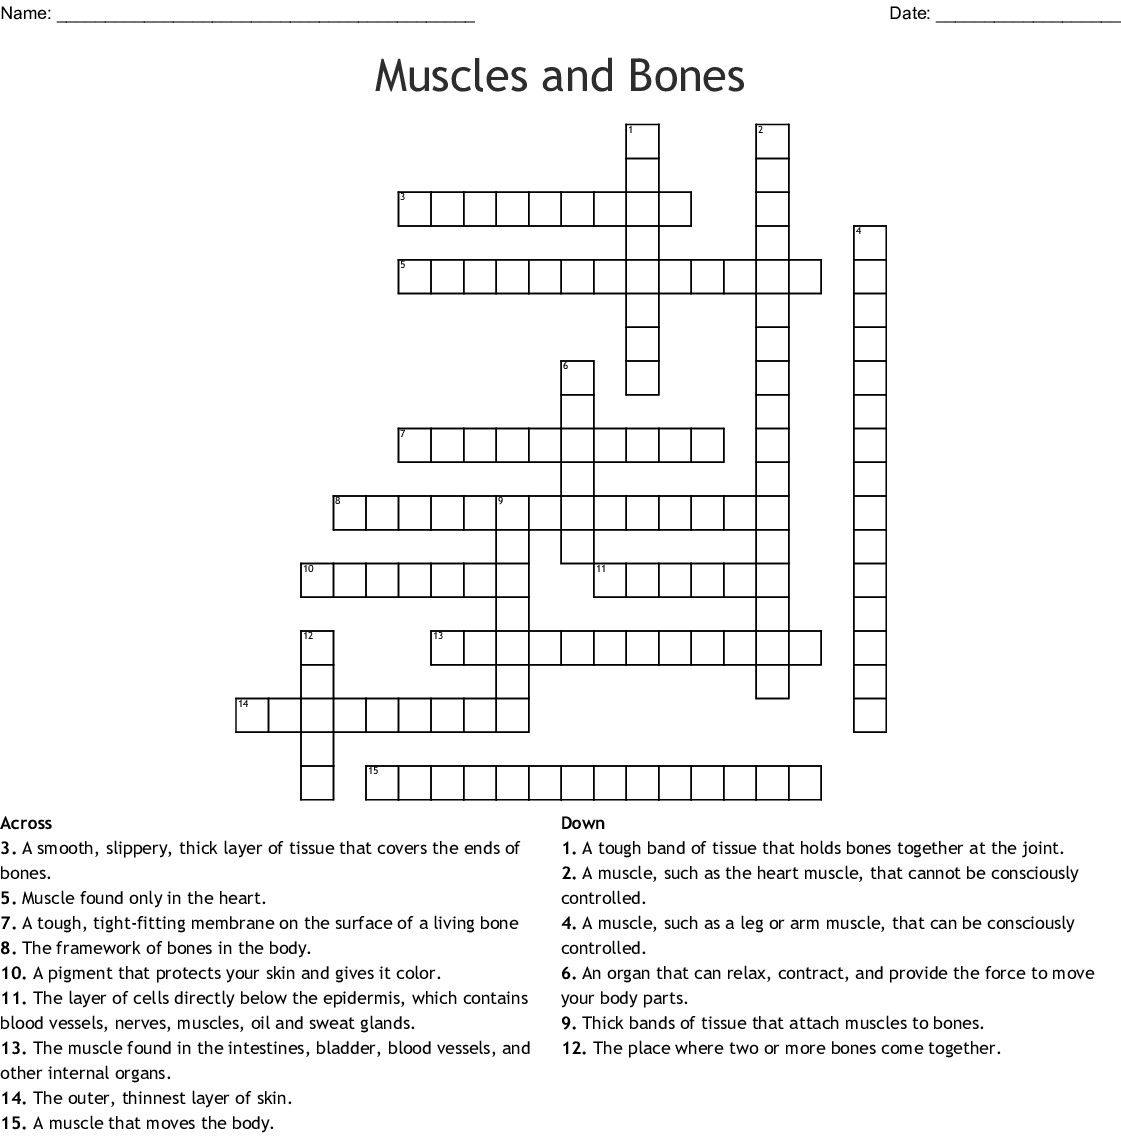 Muscles And Bones Crossword